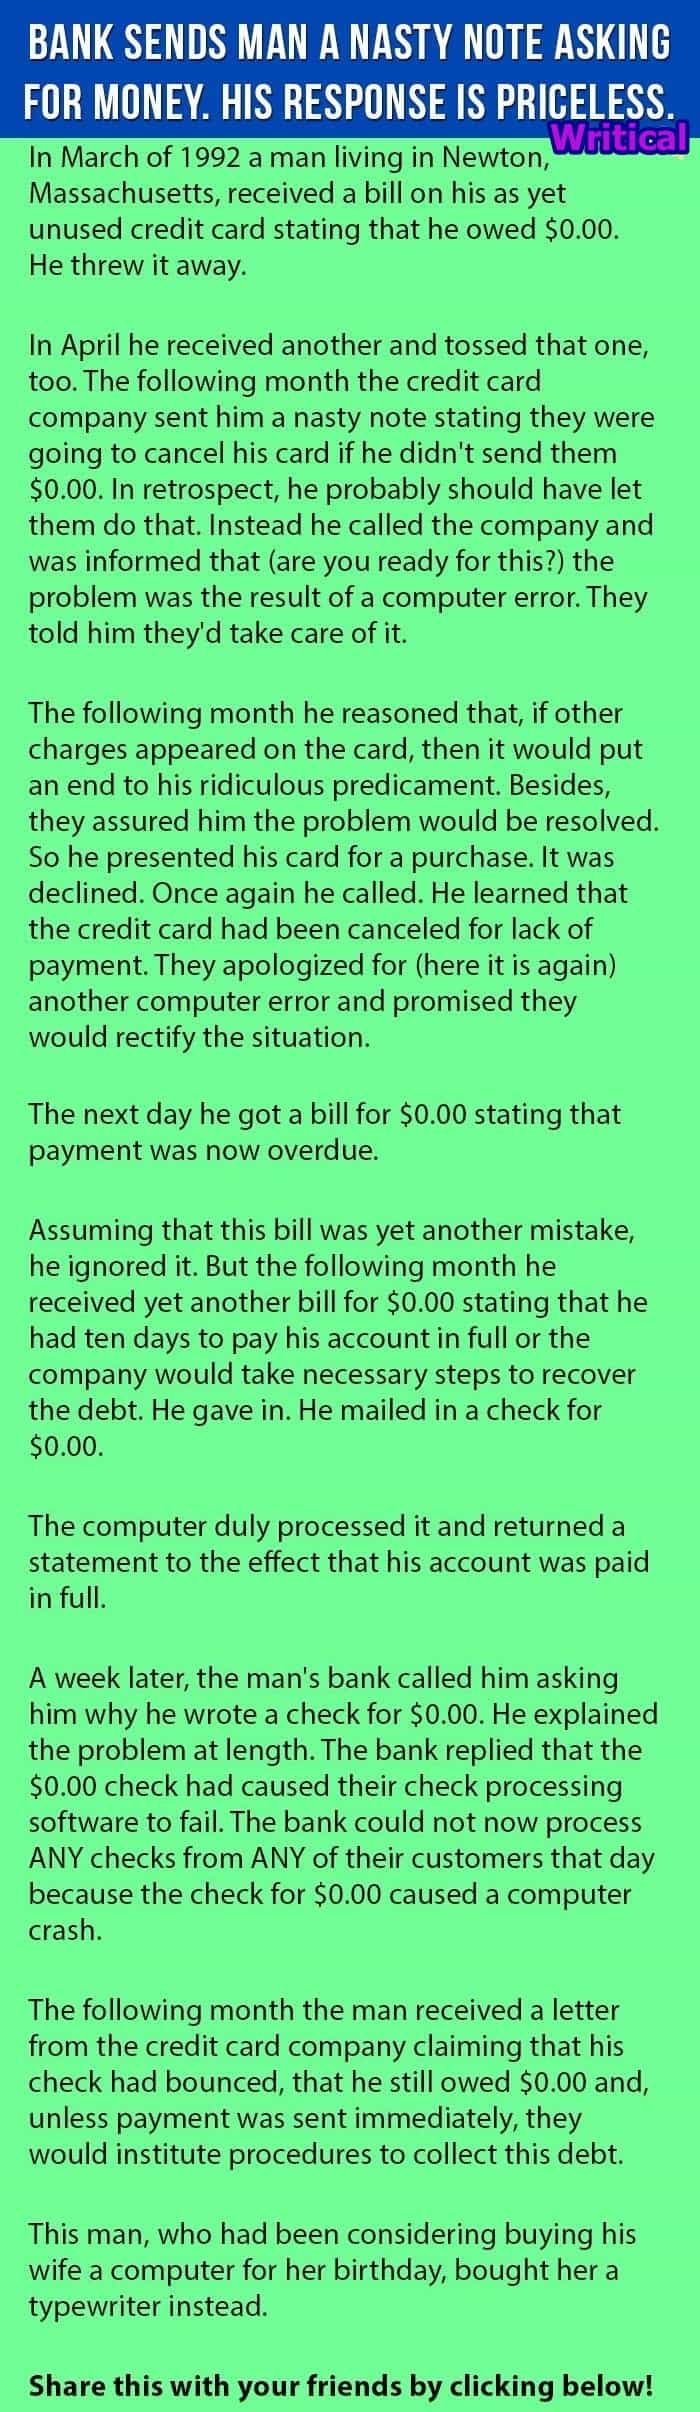 Credit Card fault created headache for the bank. Funny